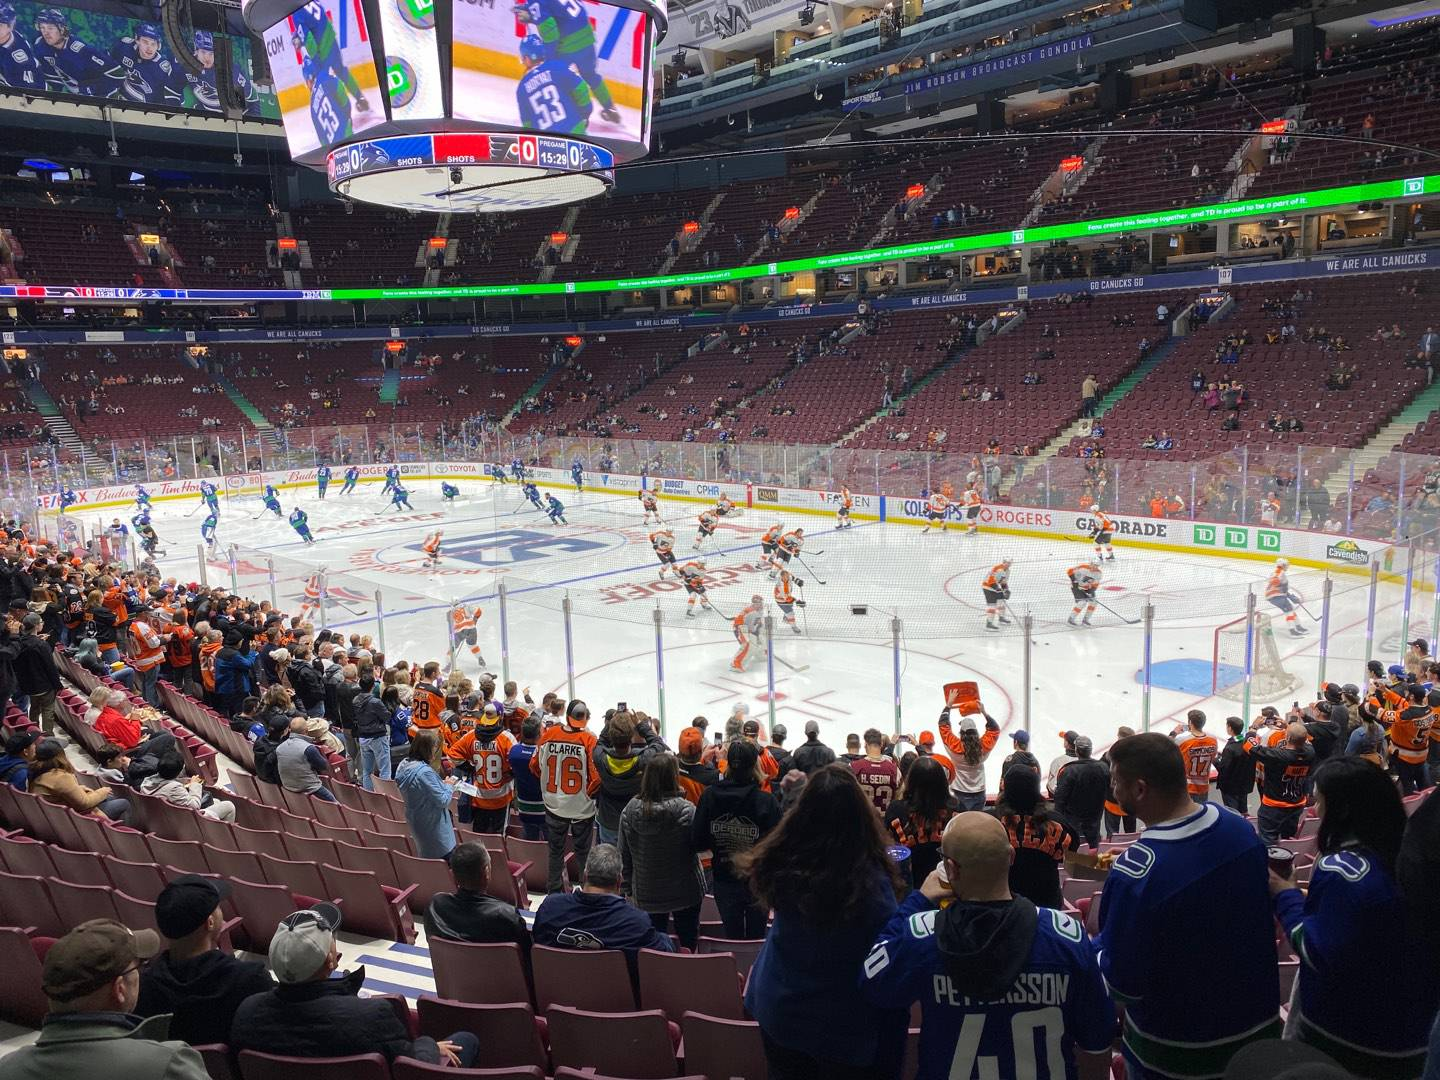 Rogers Arena Section 114 Row 12 Seat 6